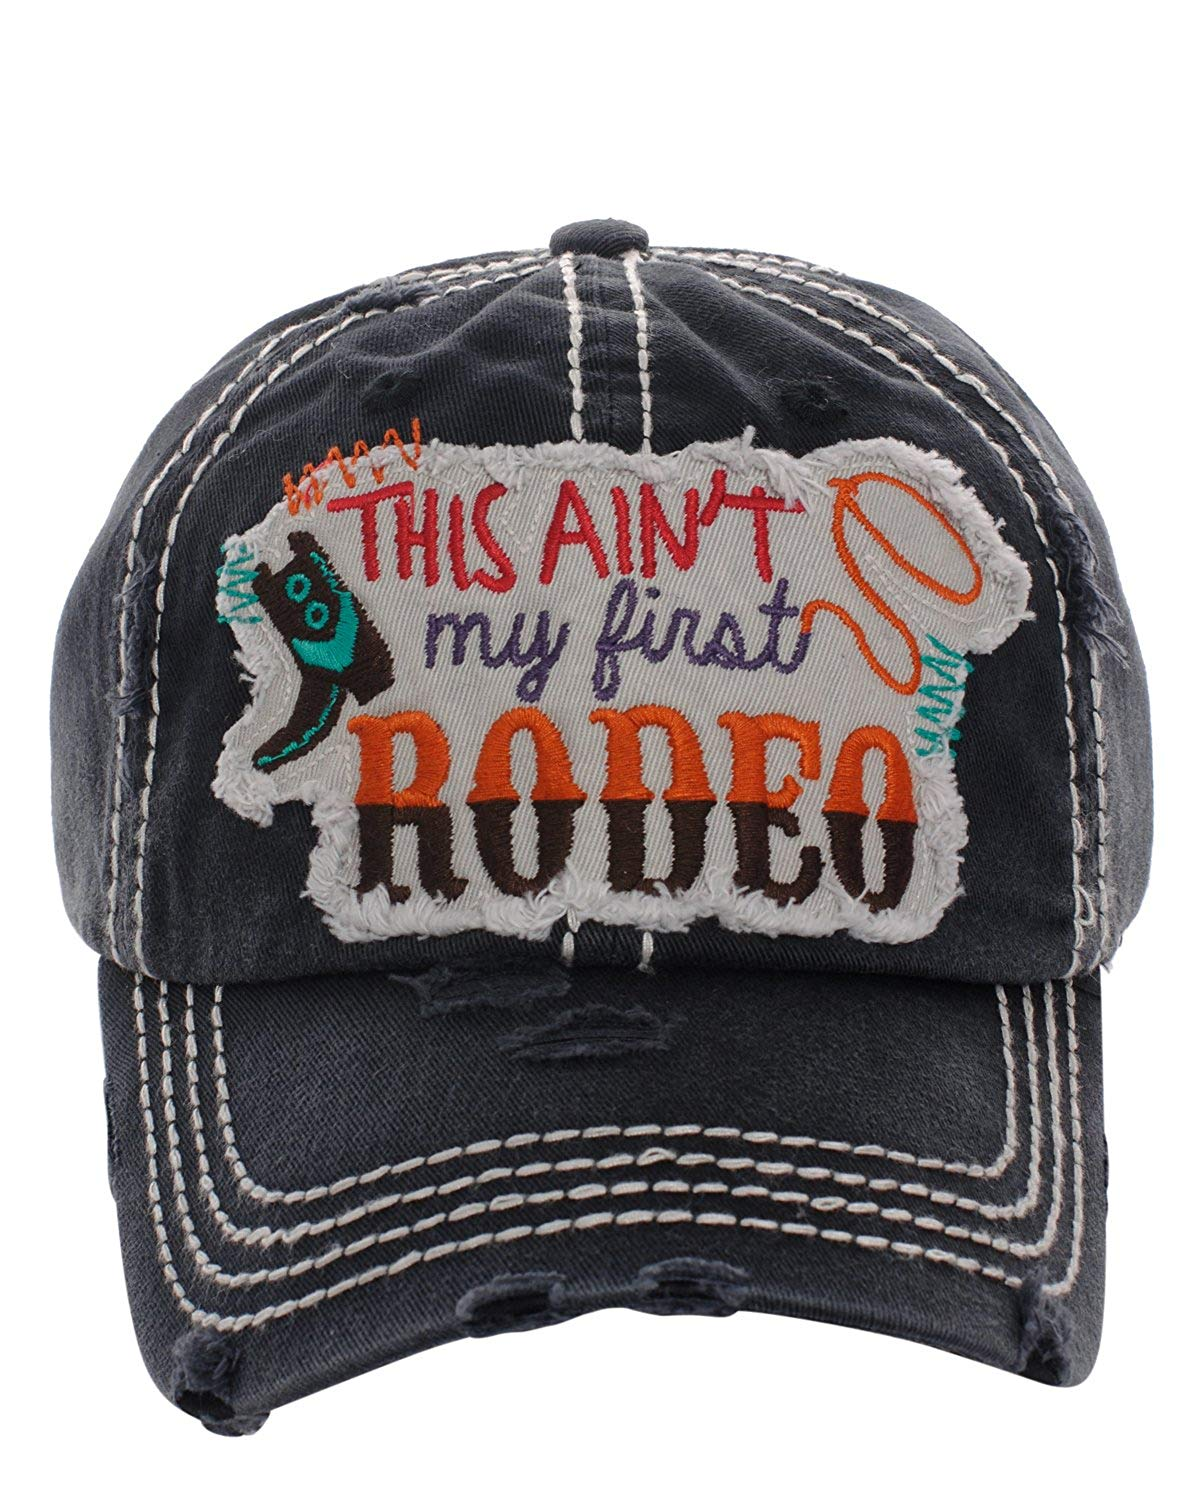 c9c4714ff67 Get Quotations · KB JP Adjustable This Aint My First Rodeo Boot Rope  Vintage Distressed Hat Cap